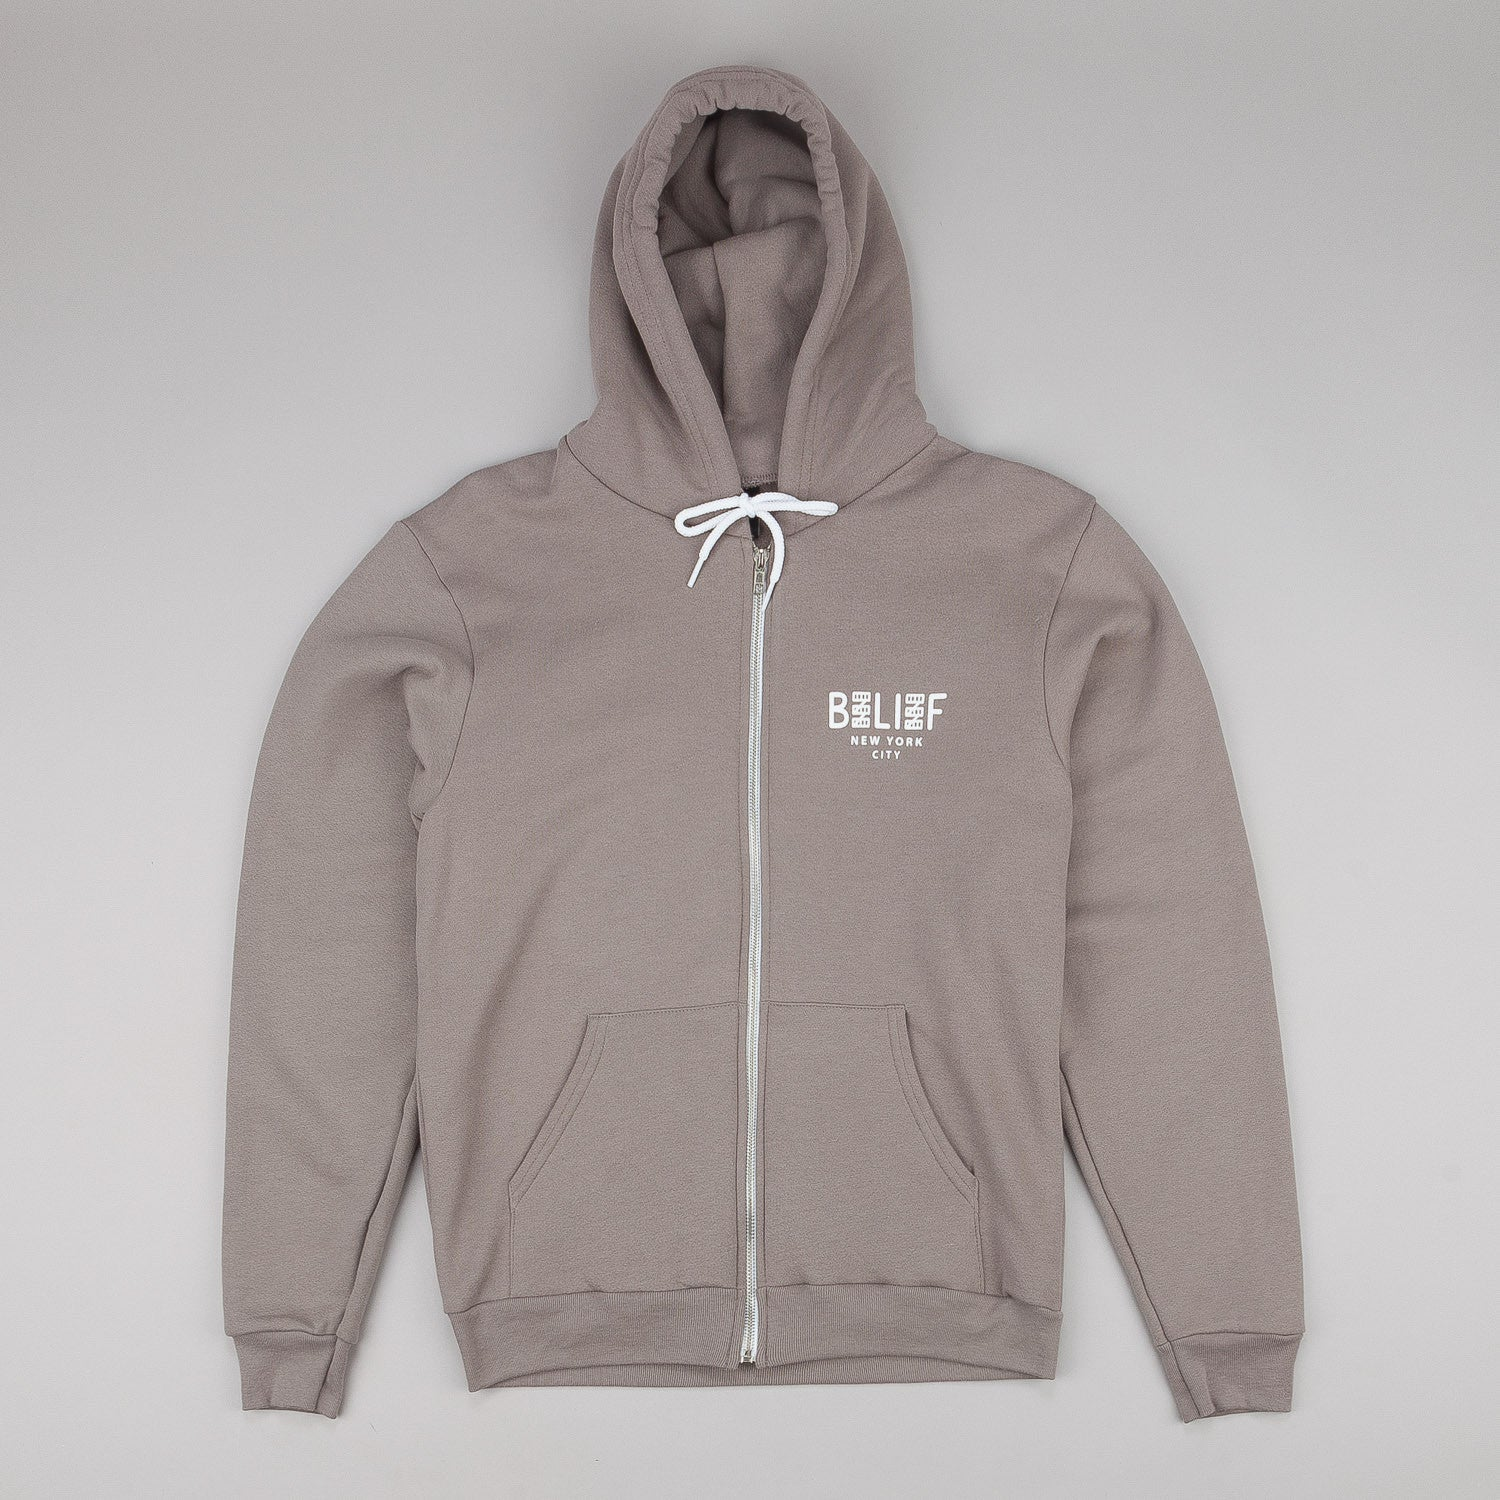 Belief City Block Zip Hooded Sweatshirt